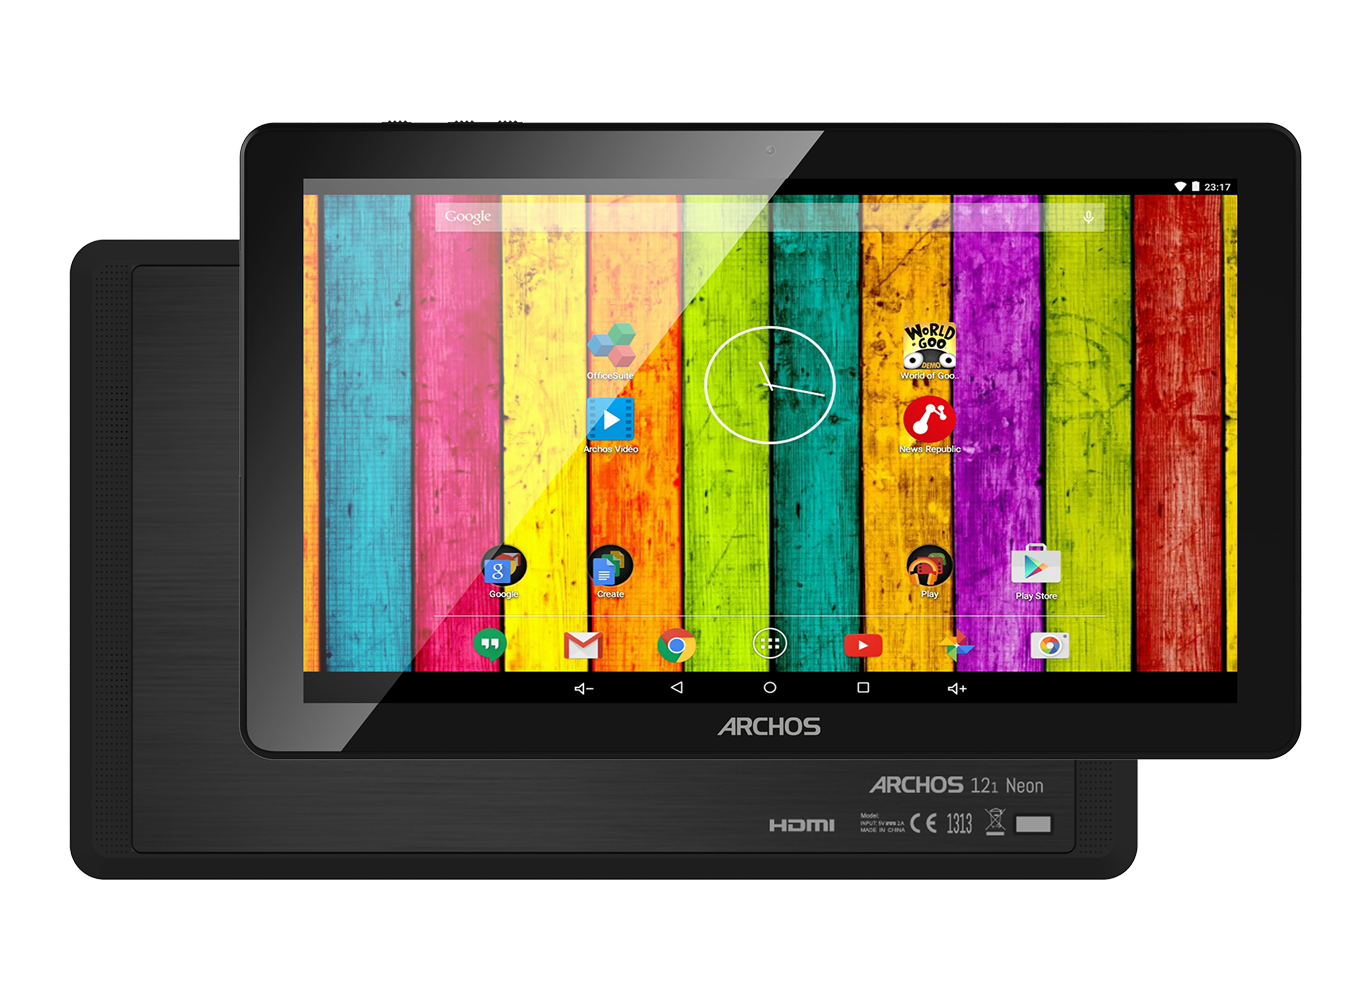 ARCHOS 121 Neon, Tablets - Overview